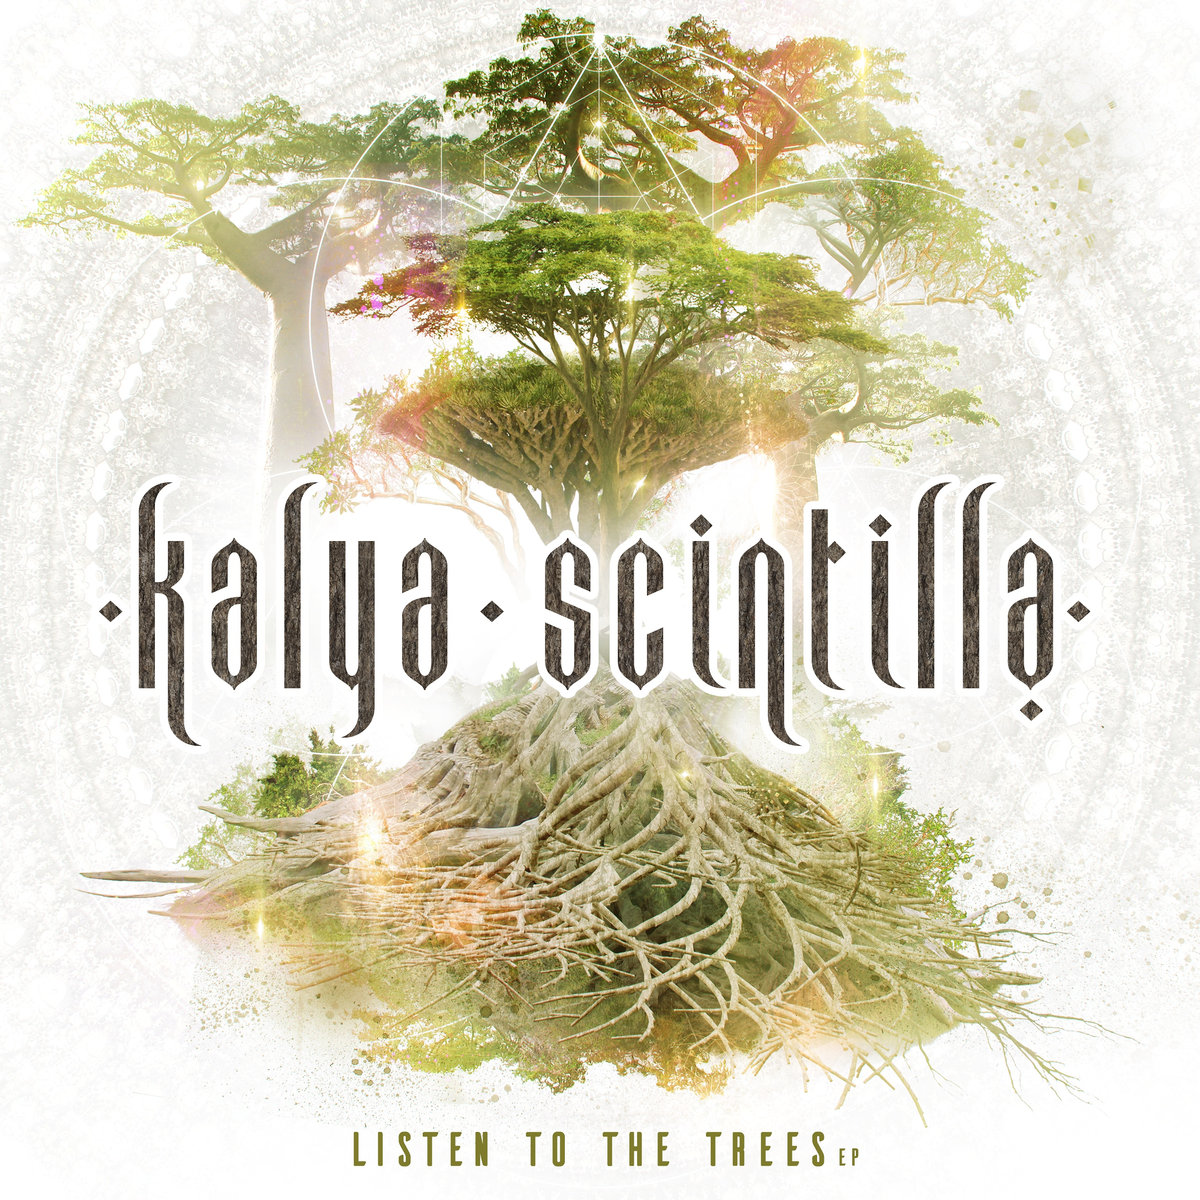 Kalya Scintilla - Listen to the Trees @ 'Listen to the Trees' album (electronic, ambient)